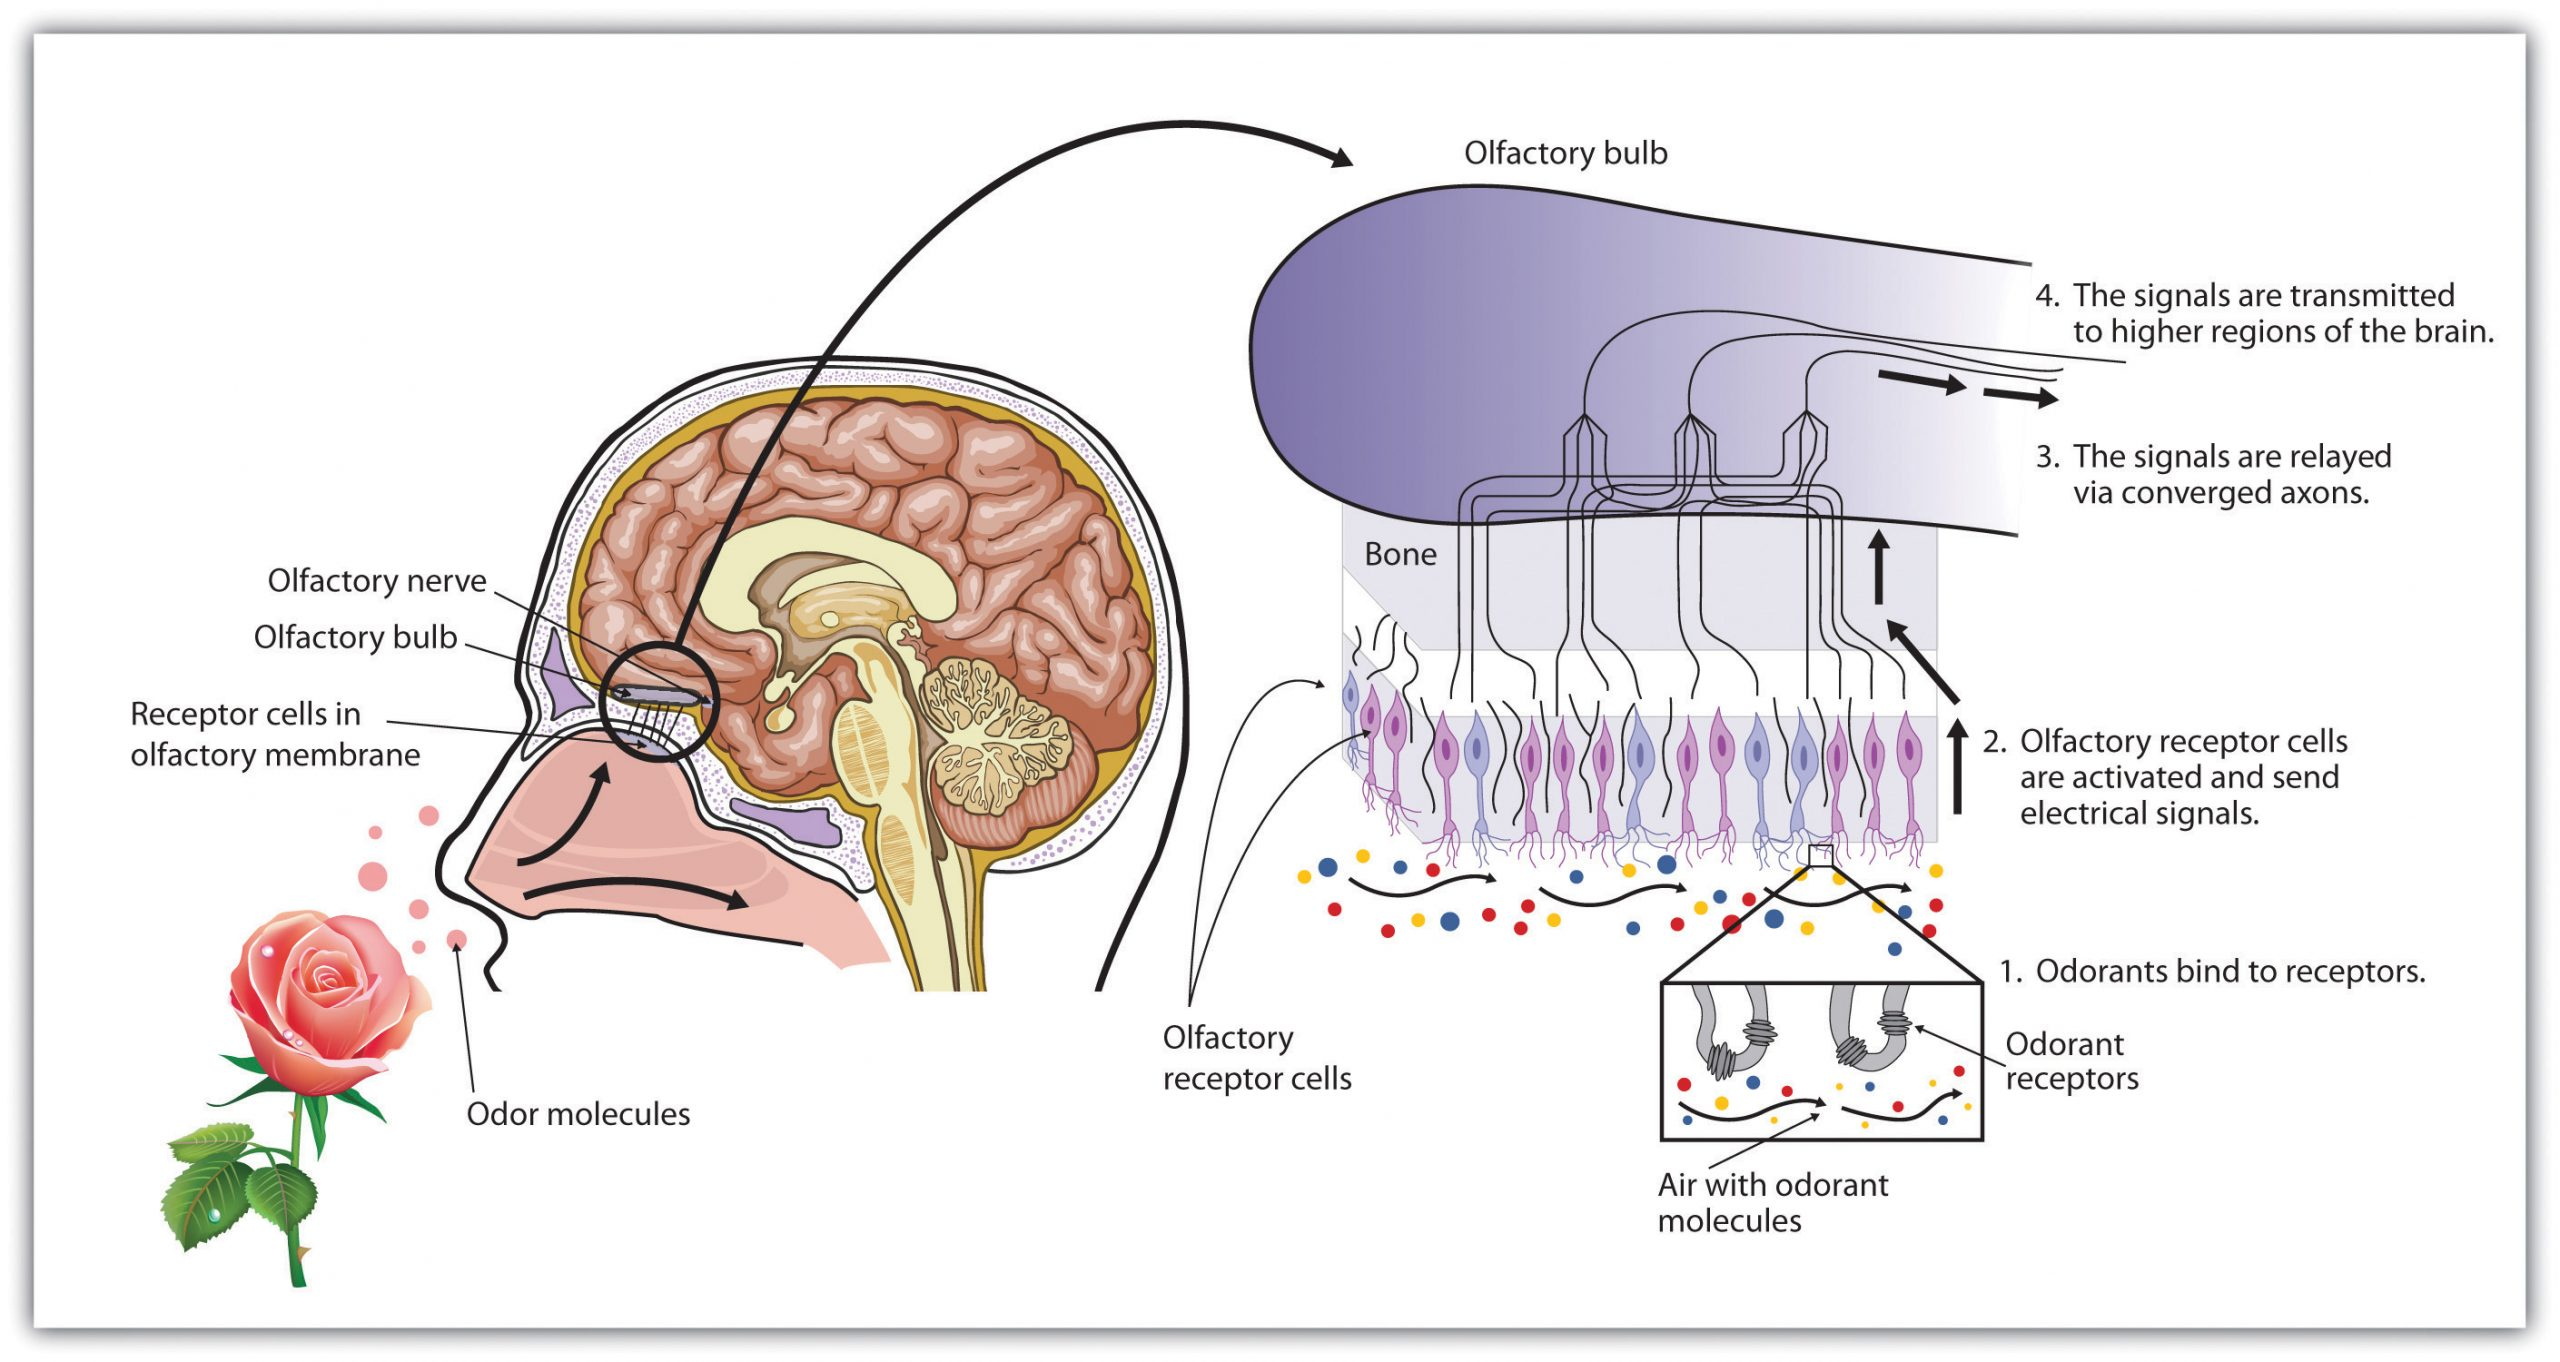 This diagram shows how odour molecules are sensed by olfactory receptor cells and signals are transmitted to higher regions of the brain.